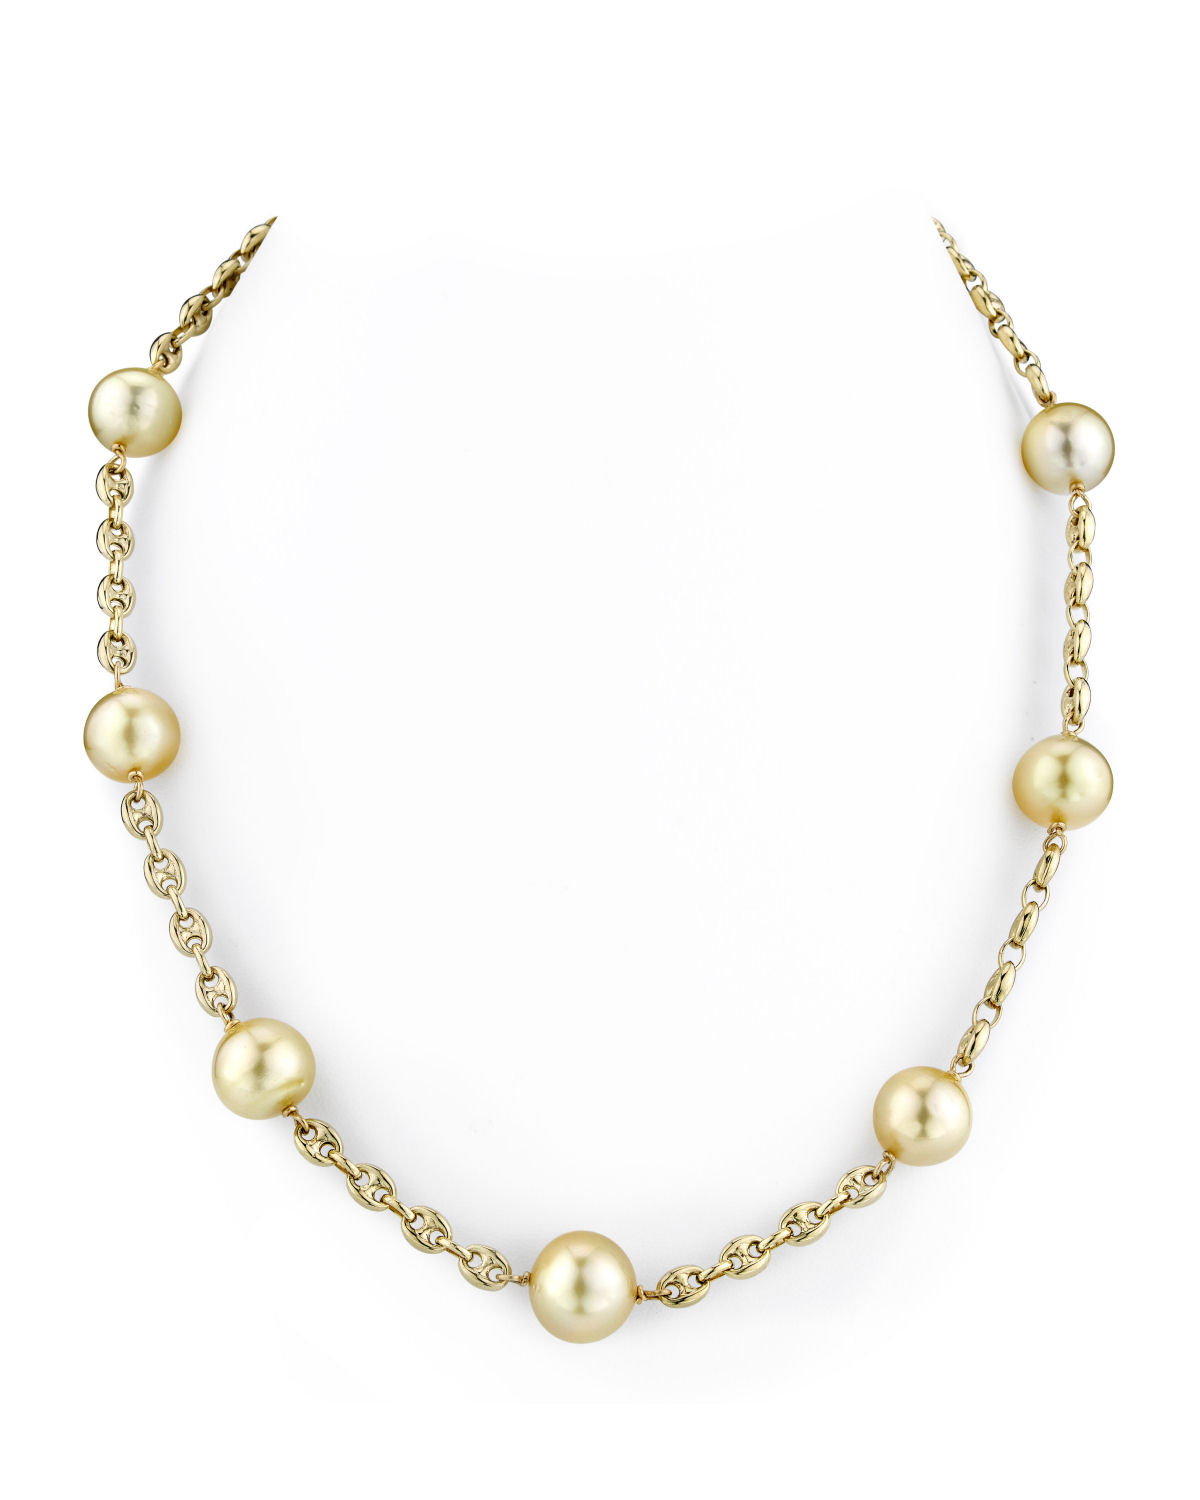 14K Gold Tincup Necklace with 10-11mm Light Golden Pearls